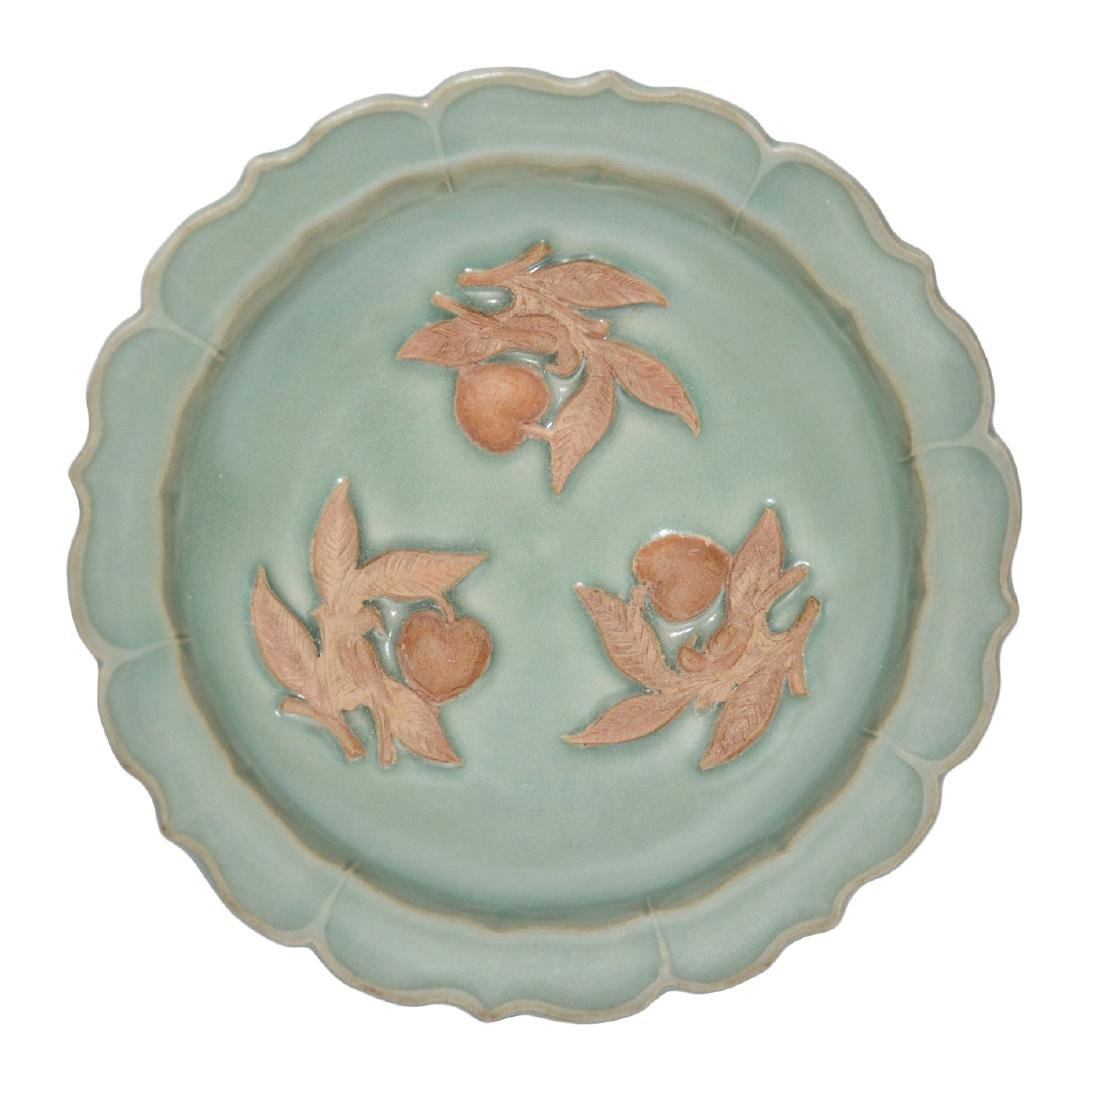 Song Dynasty, A Longquan Celadon Biscuit Plate with